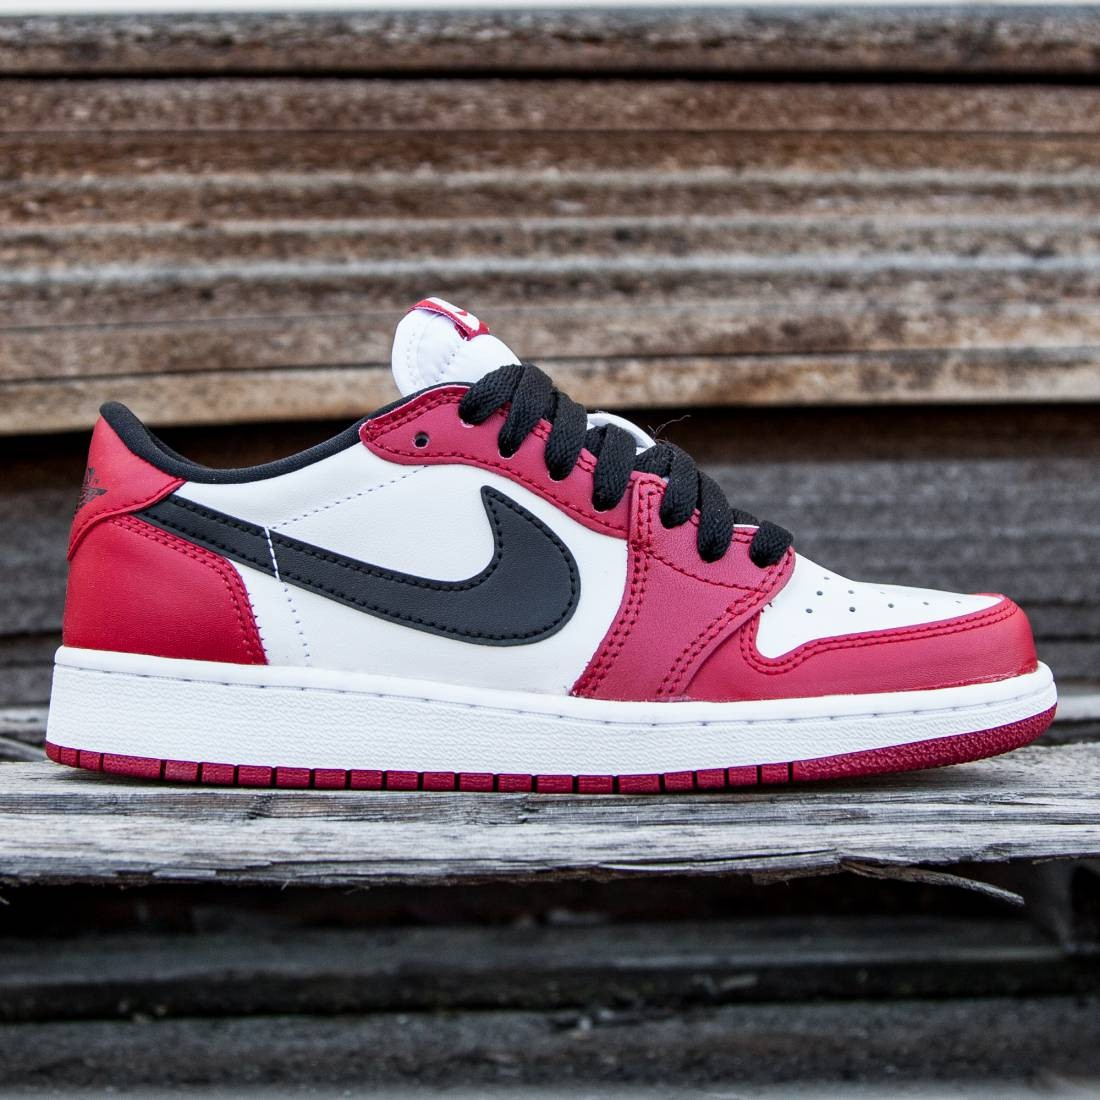 Air Jordan 1 Retro Low OG BG Big Kids (red / varsity red / black / white)